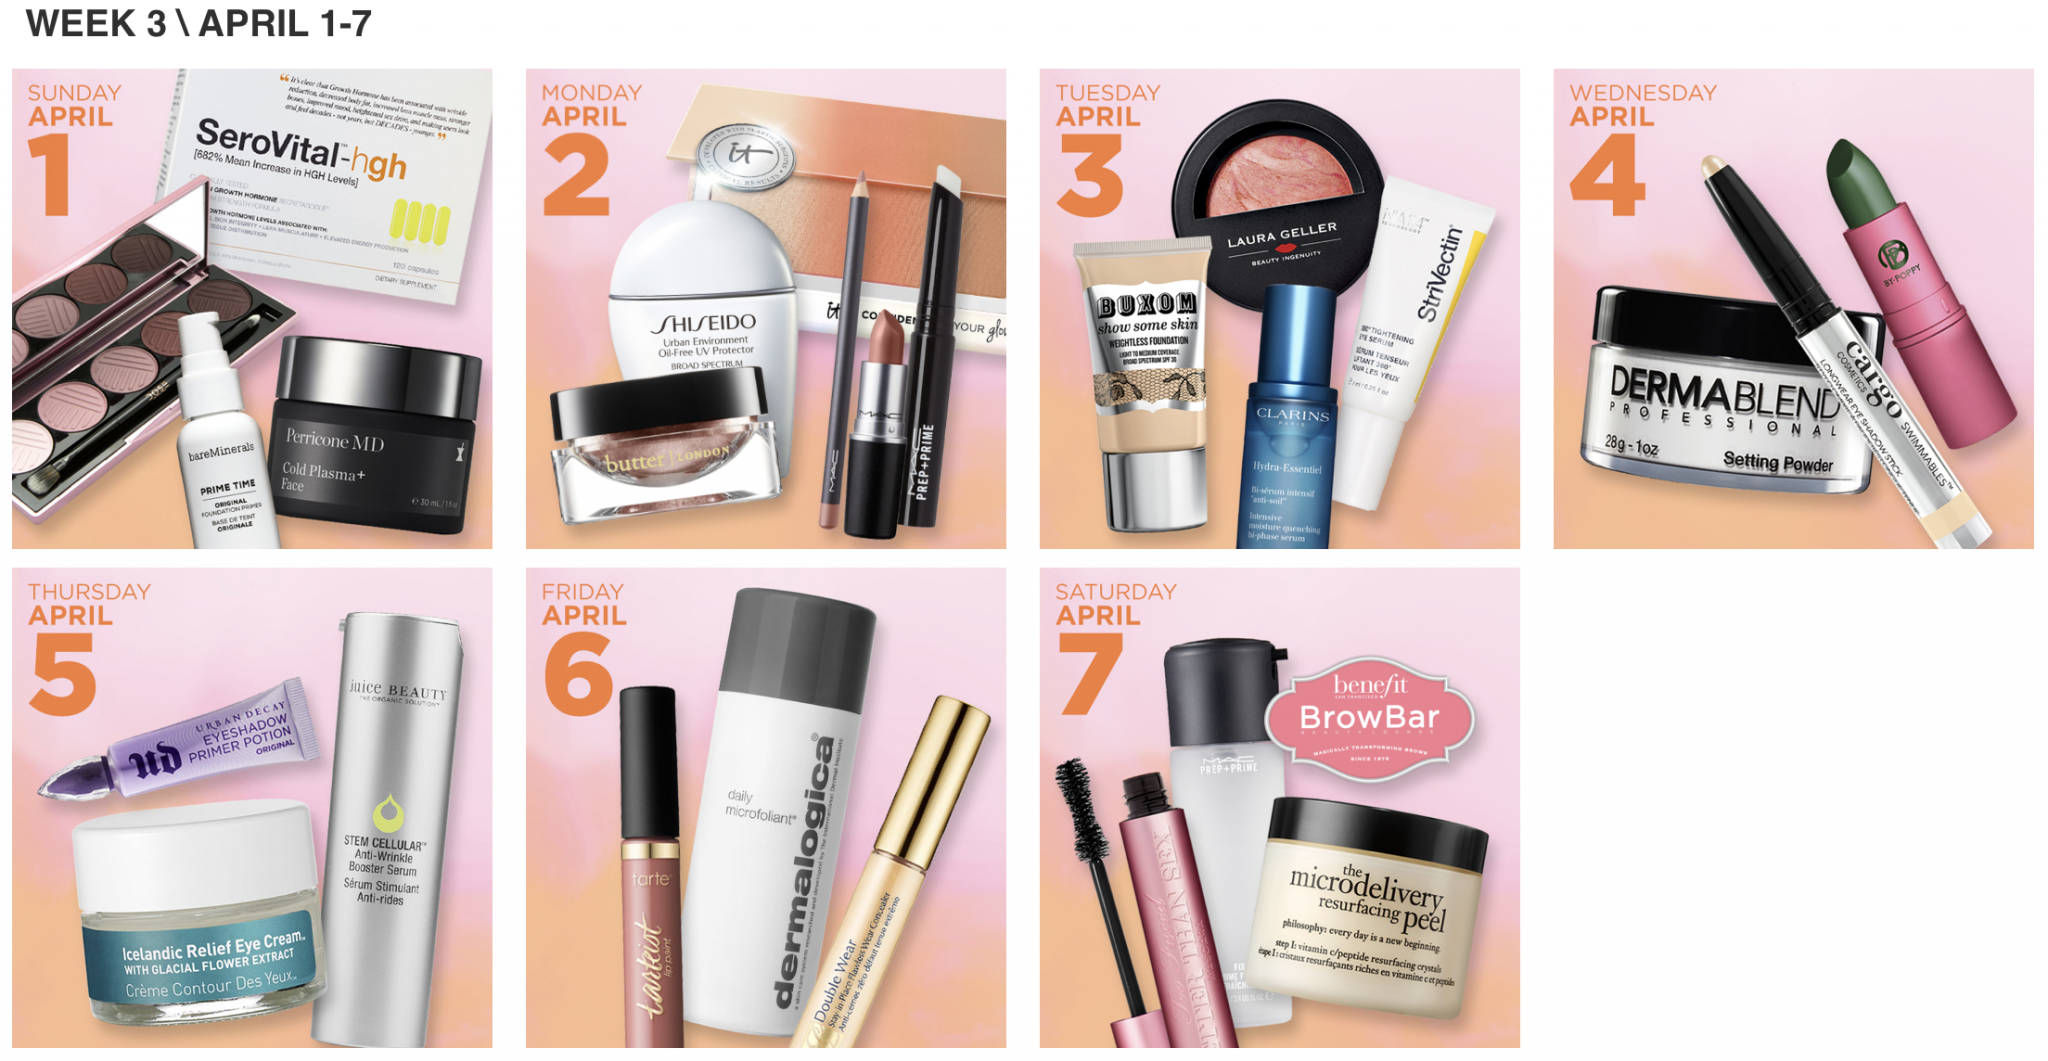 Ulta 21 Days of Beauty 2018 Week 3.png